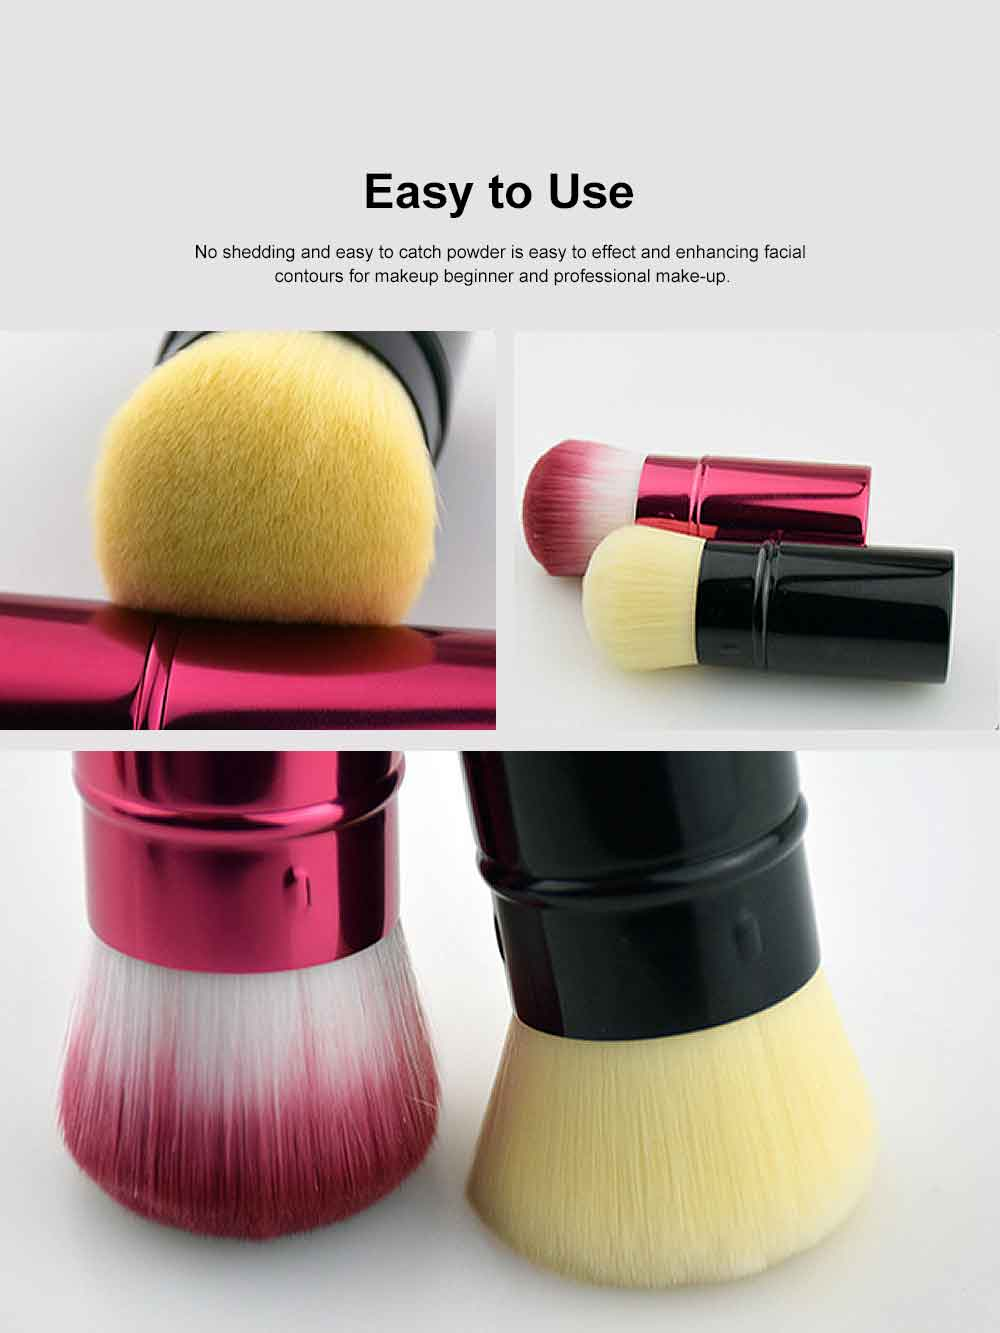 Retractable Makeup Blush Brush Blending Powder, Ultra-soft and Portable Cosmetic Tools for Women 4